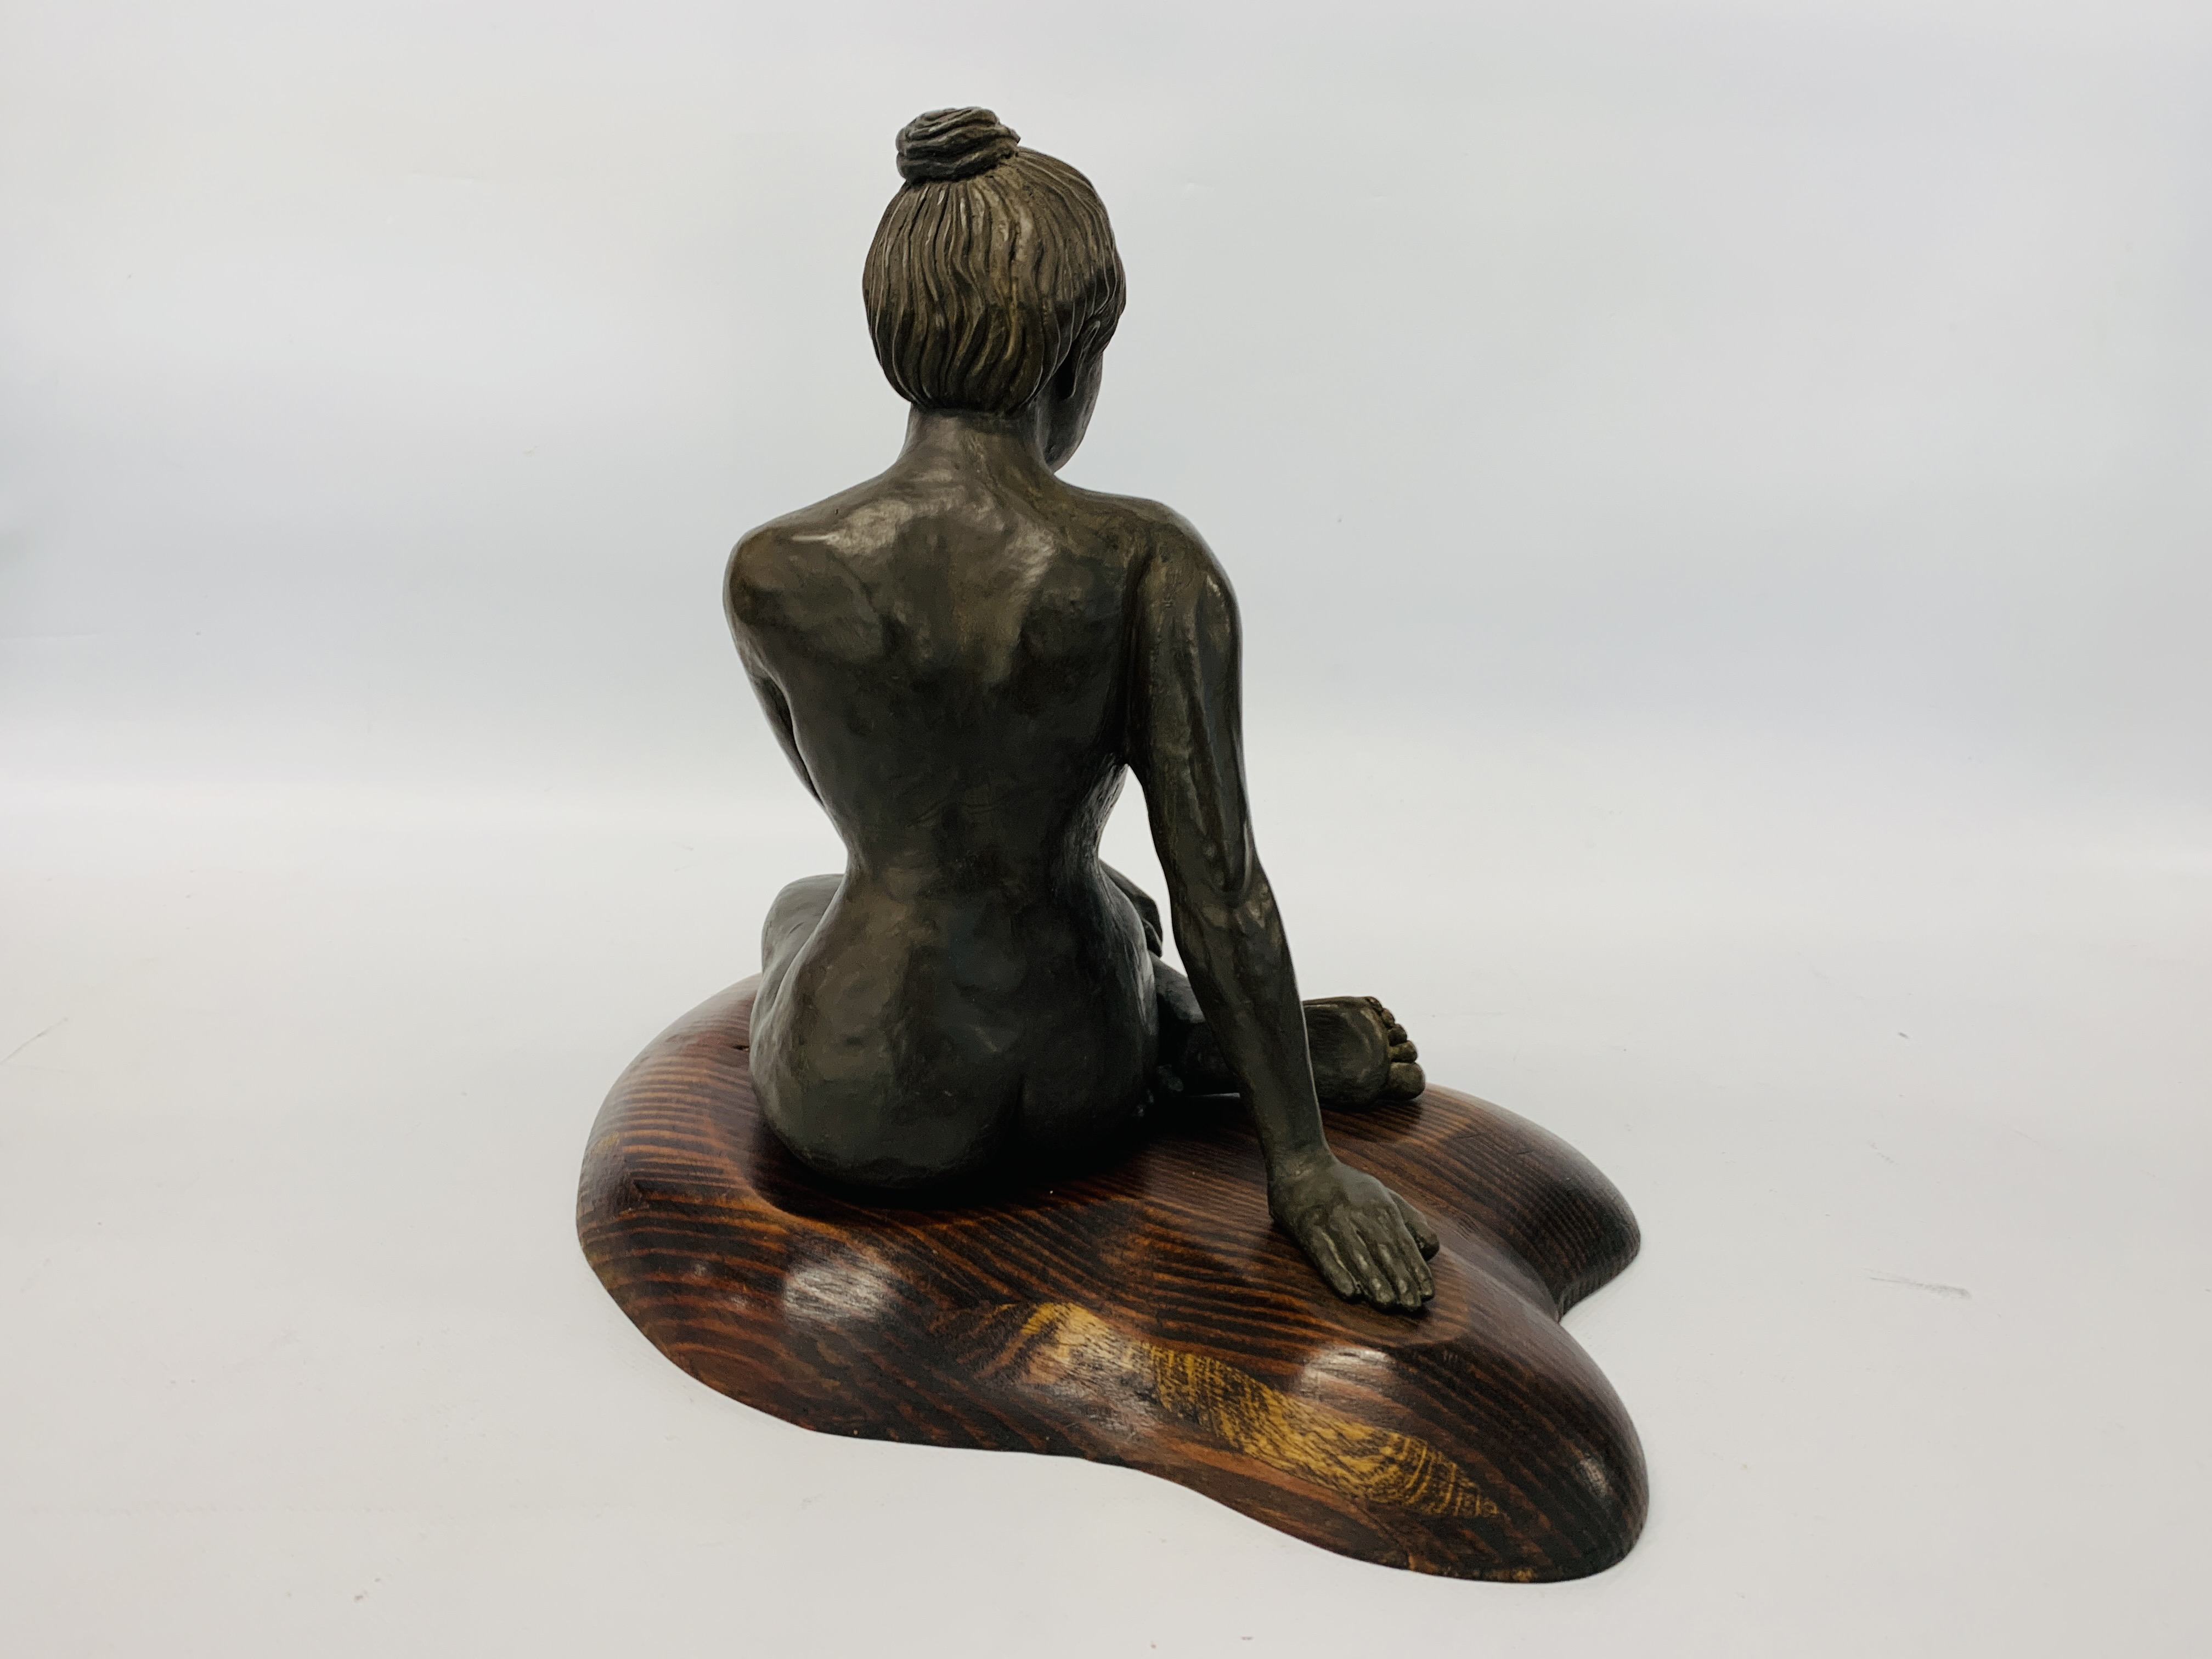 A BRONZED RESIN SCULPTURE OF A SEATED WOMAN BY SONIA DOBBS ON PINE BASE - HEIGHT 33.5 CM. - Image 7 of 8